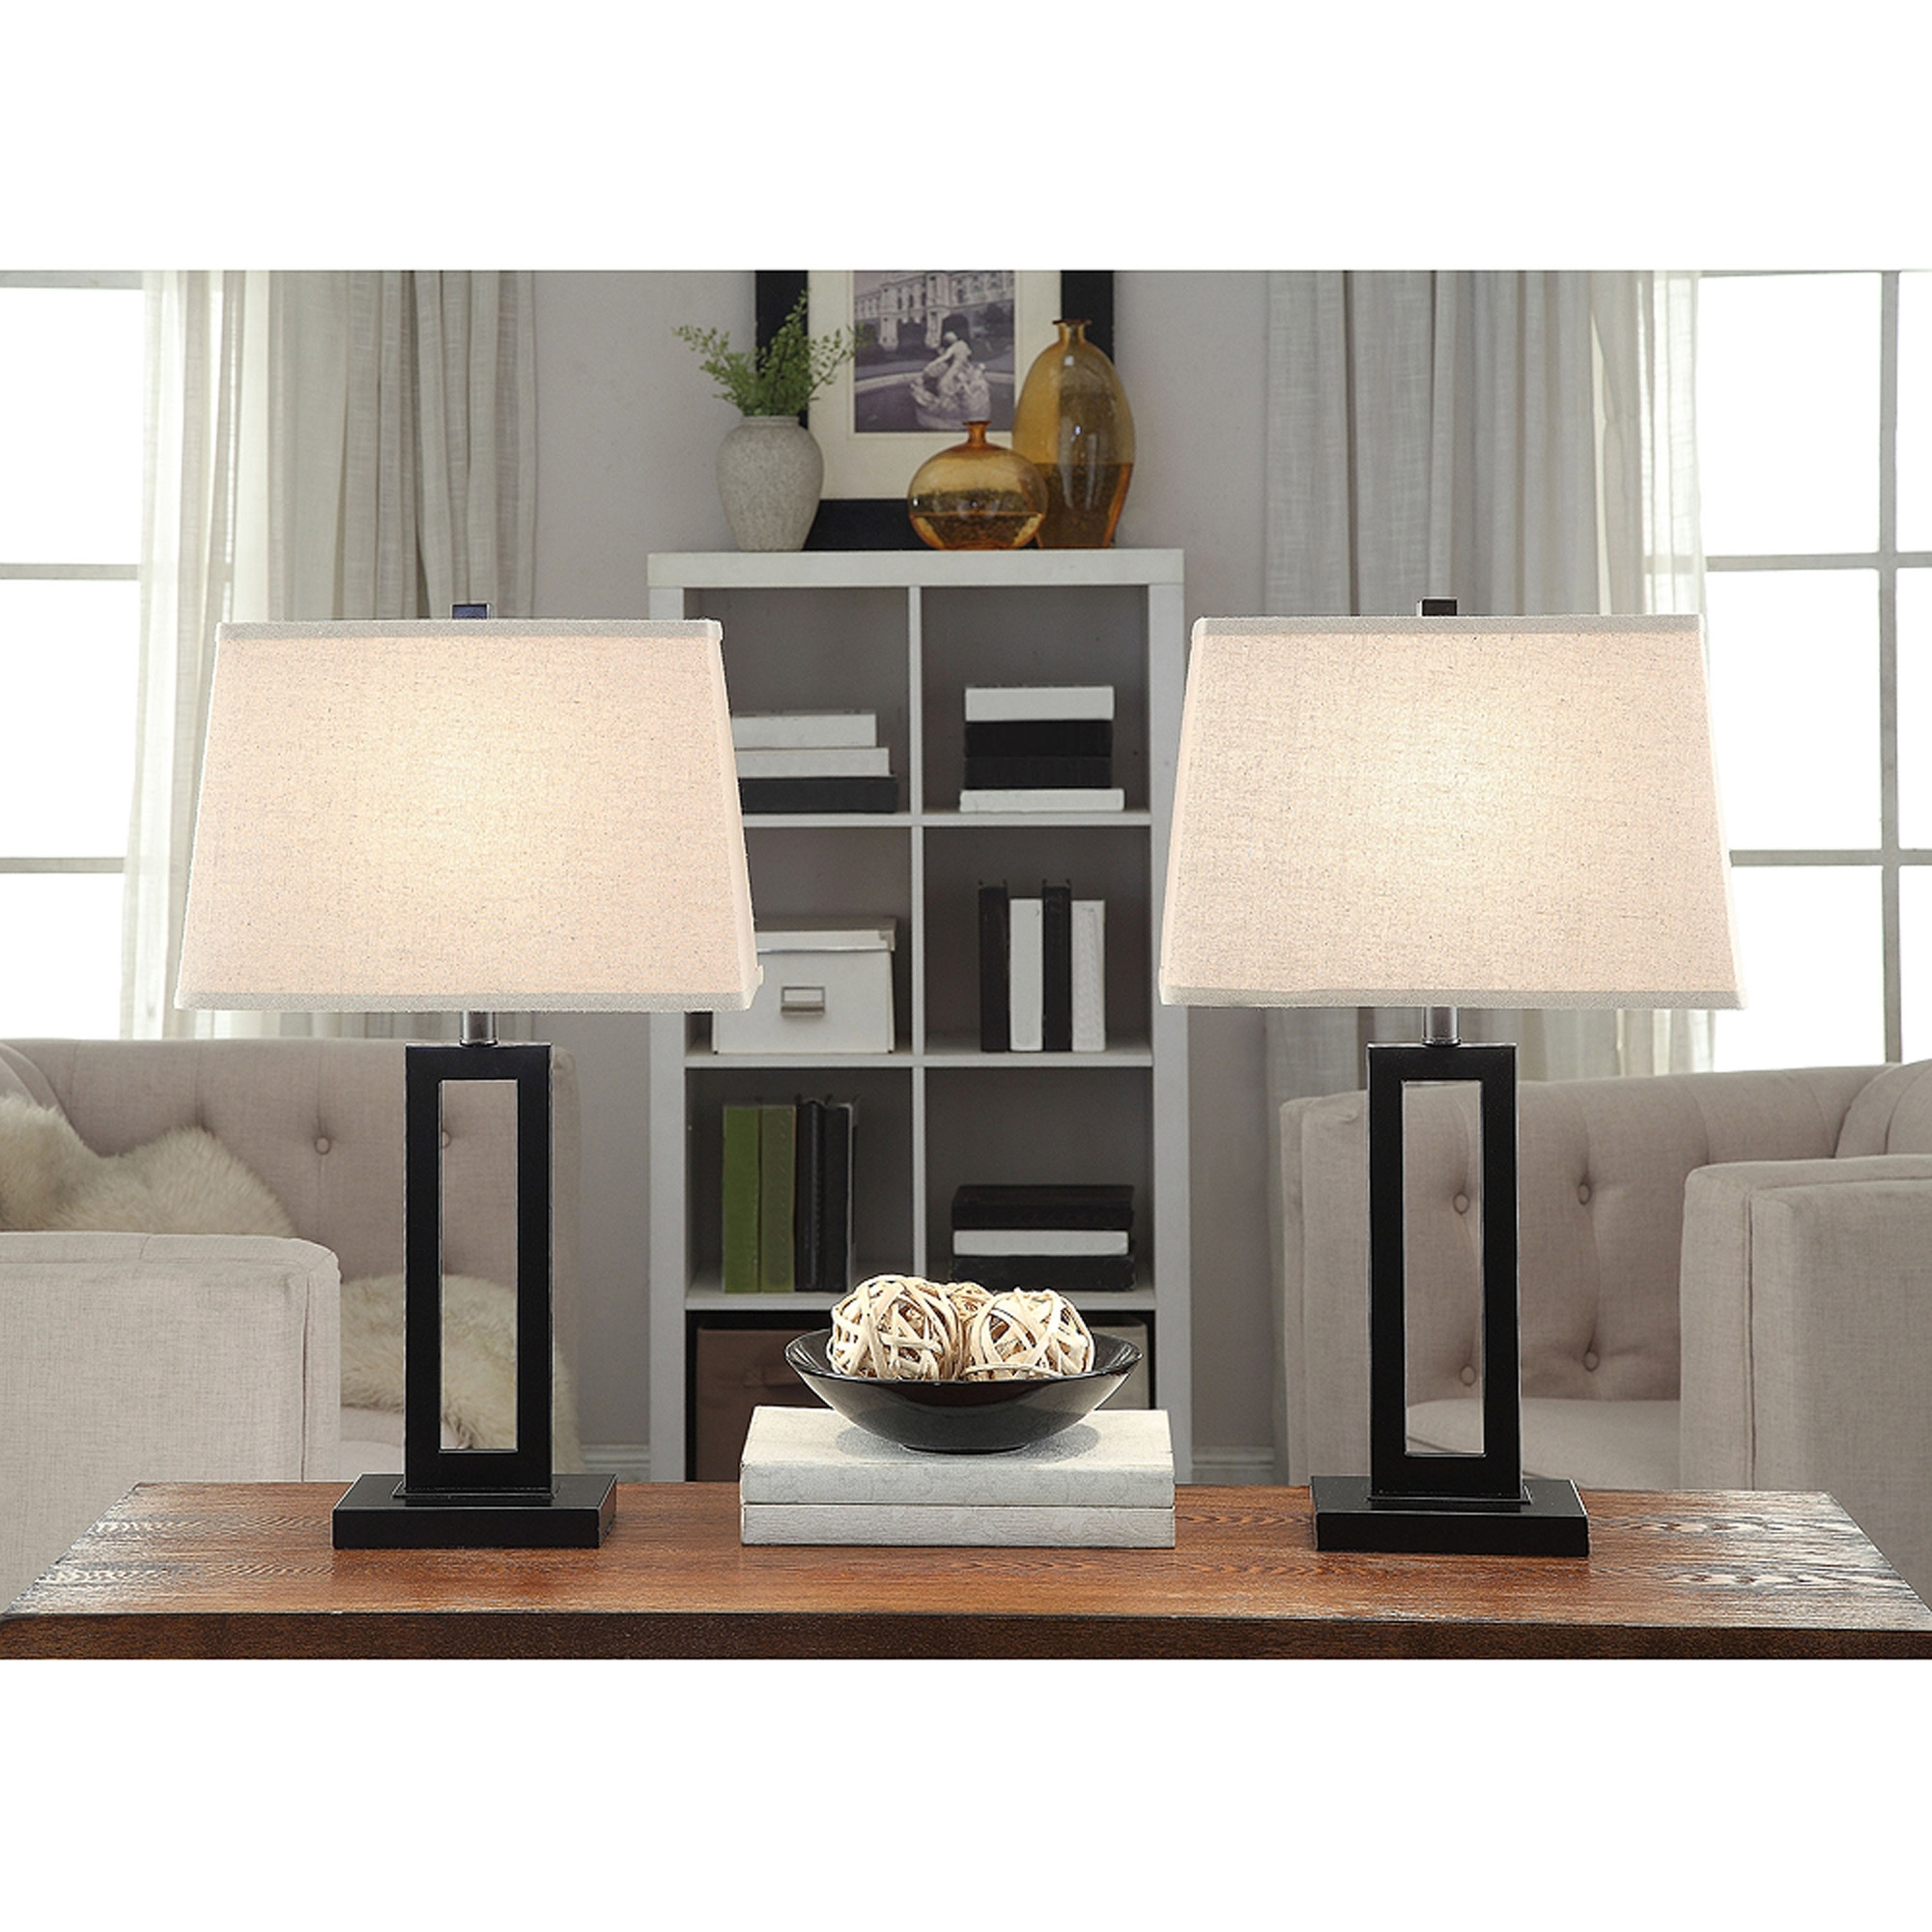 Inspiration about Table Lamp Set Of 2 Desk Living Room Black Contemporary, Living Room Pertaining To Set Of 2 Living Room Table Lamps (#9 of 15)